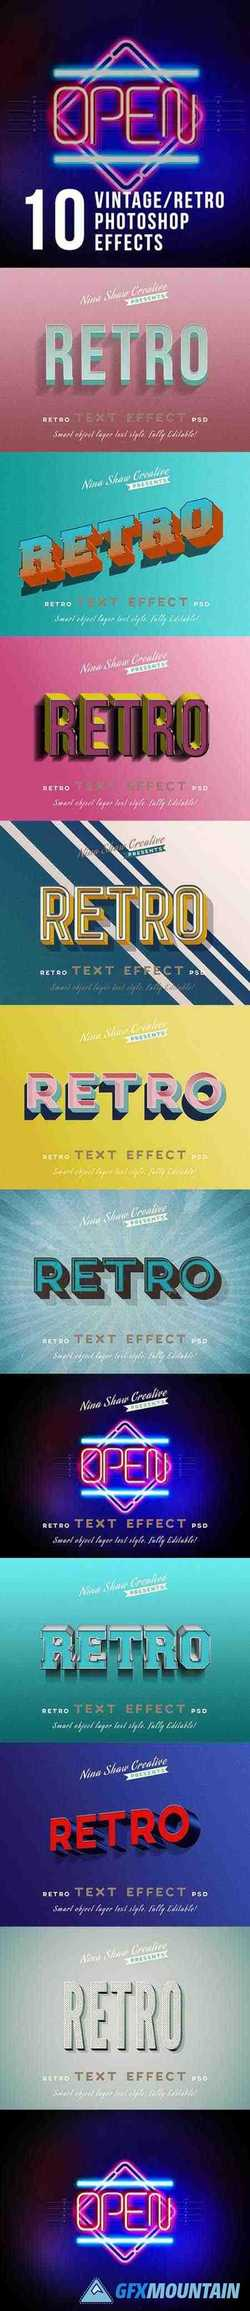 RETRO VINTAGE TEXT EFFECTS - 23825859